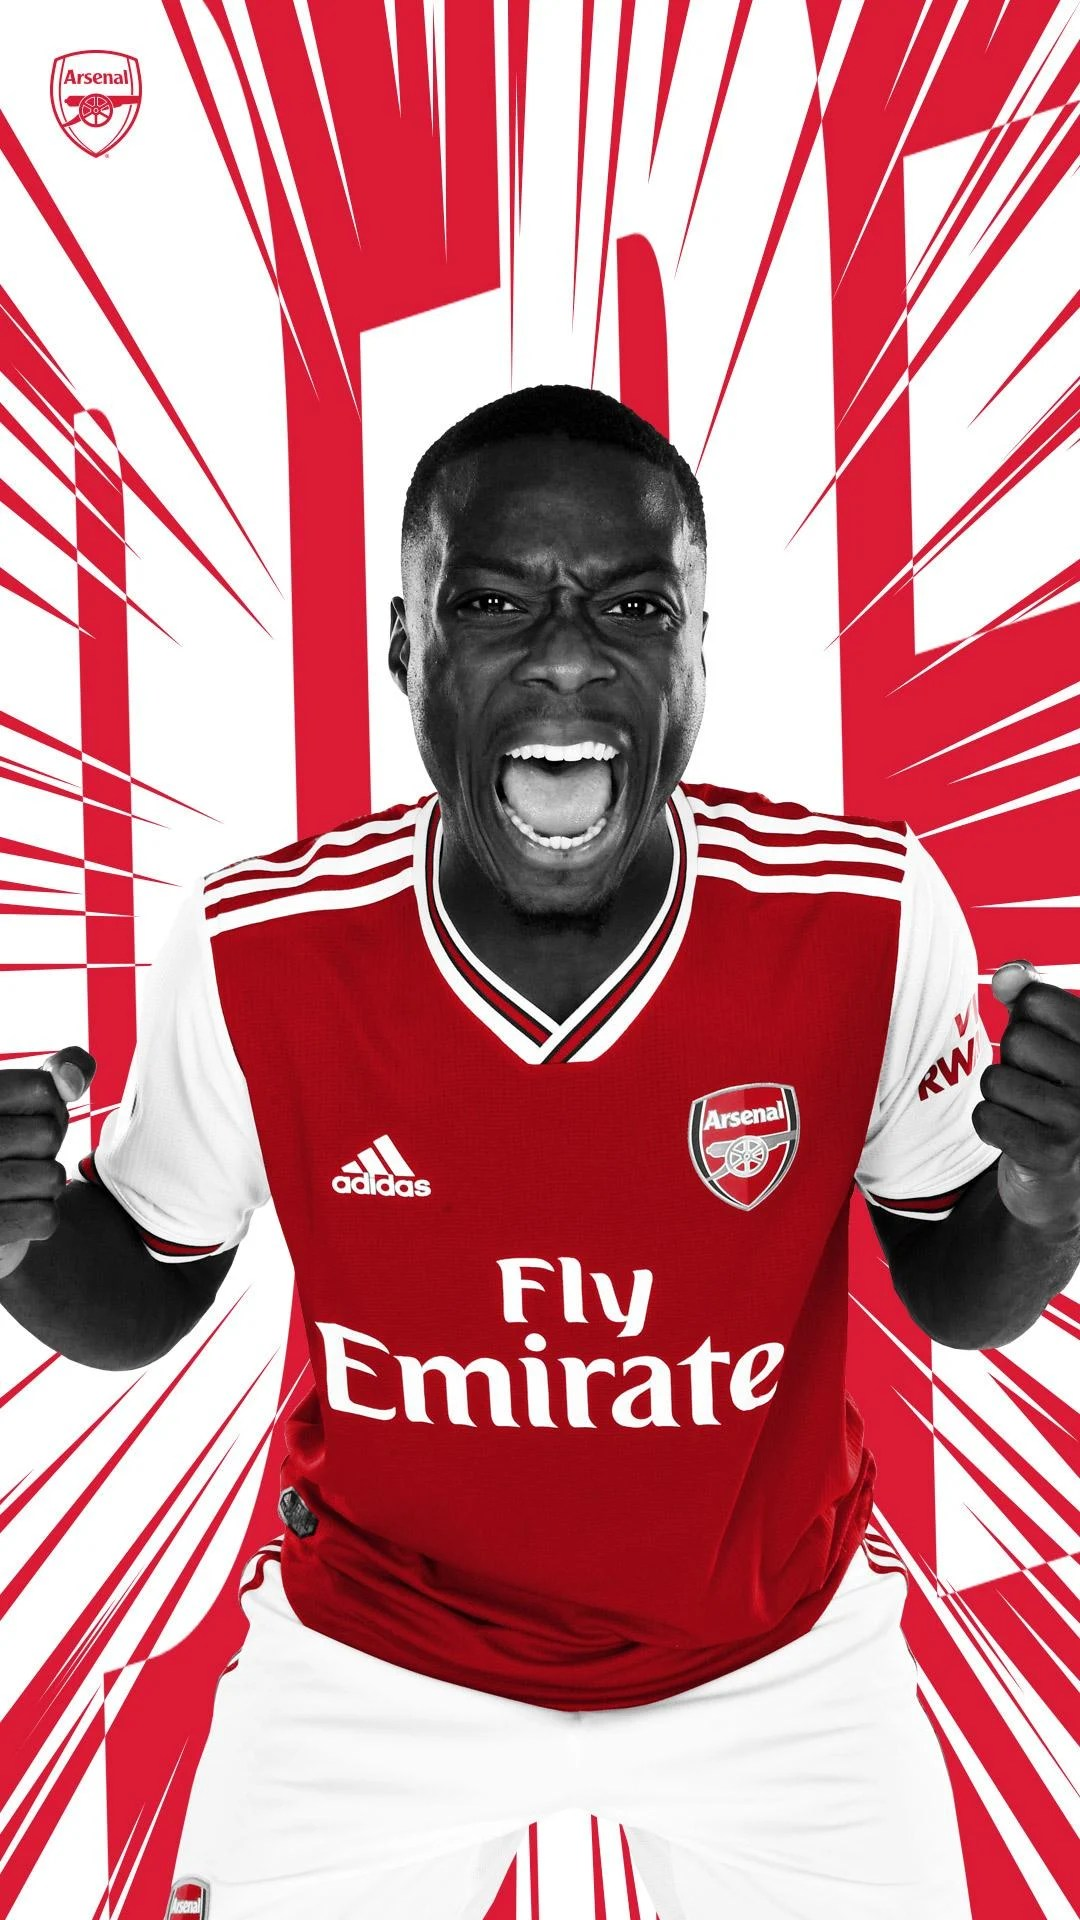 arsenal player wallpapers top free